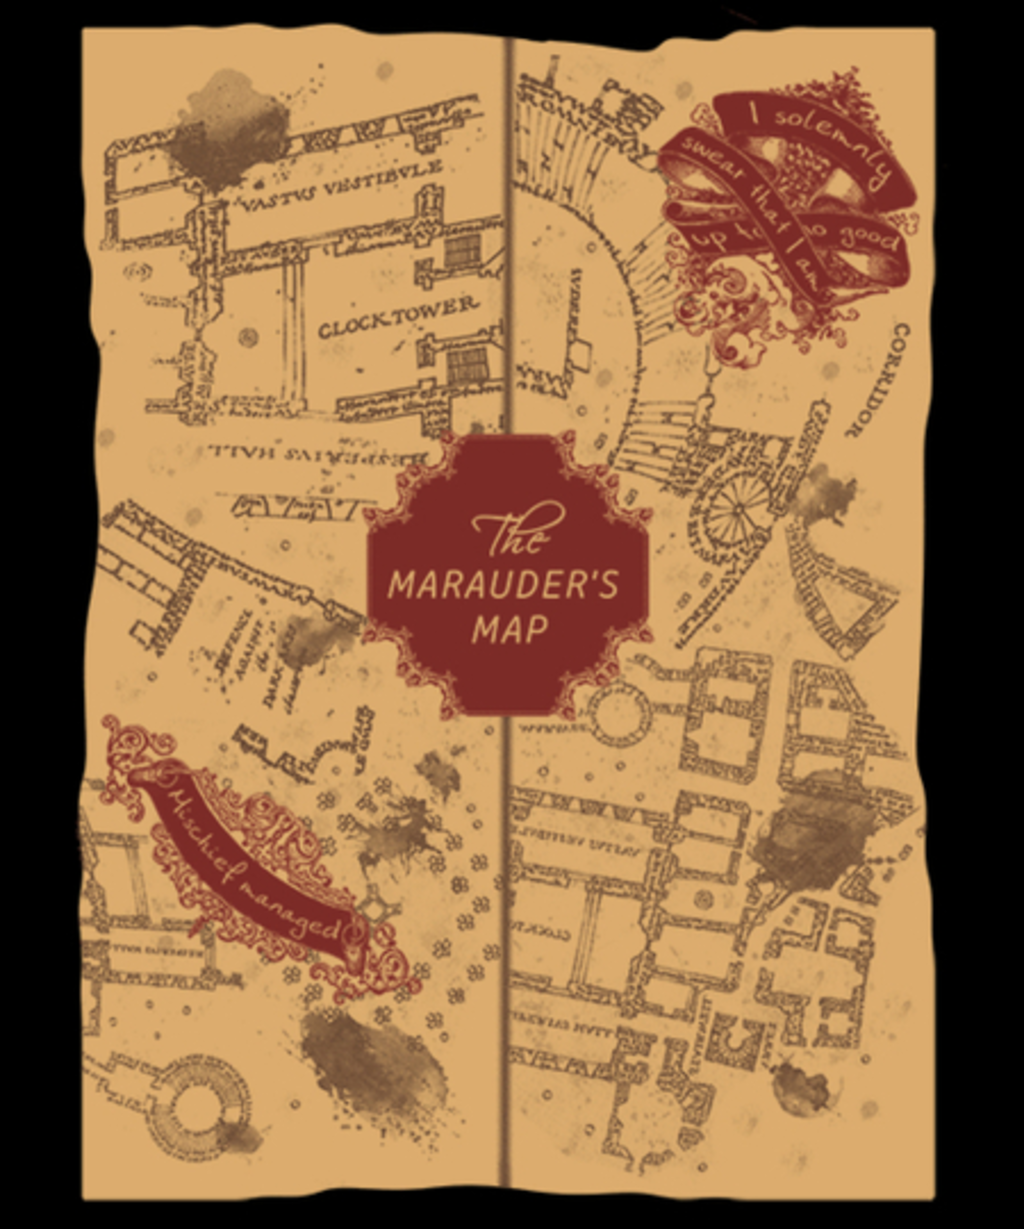 Qwertee: A magical map